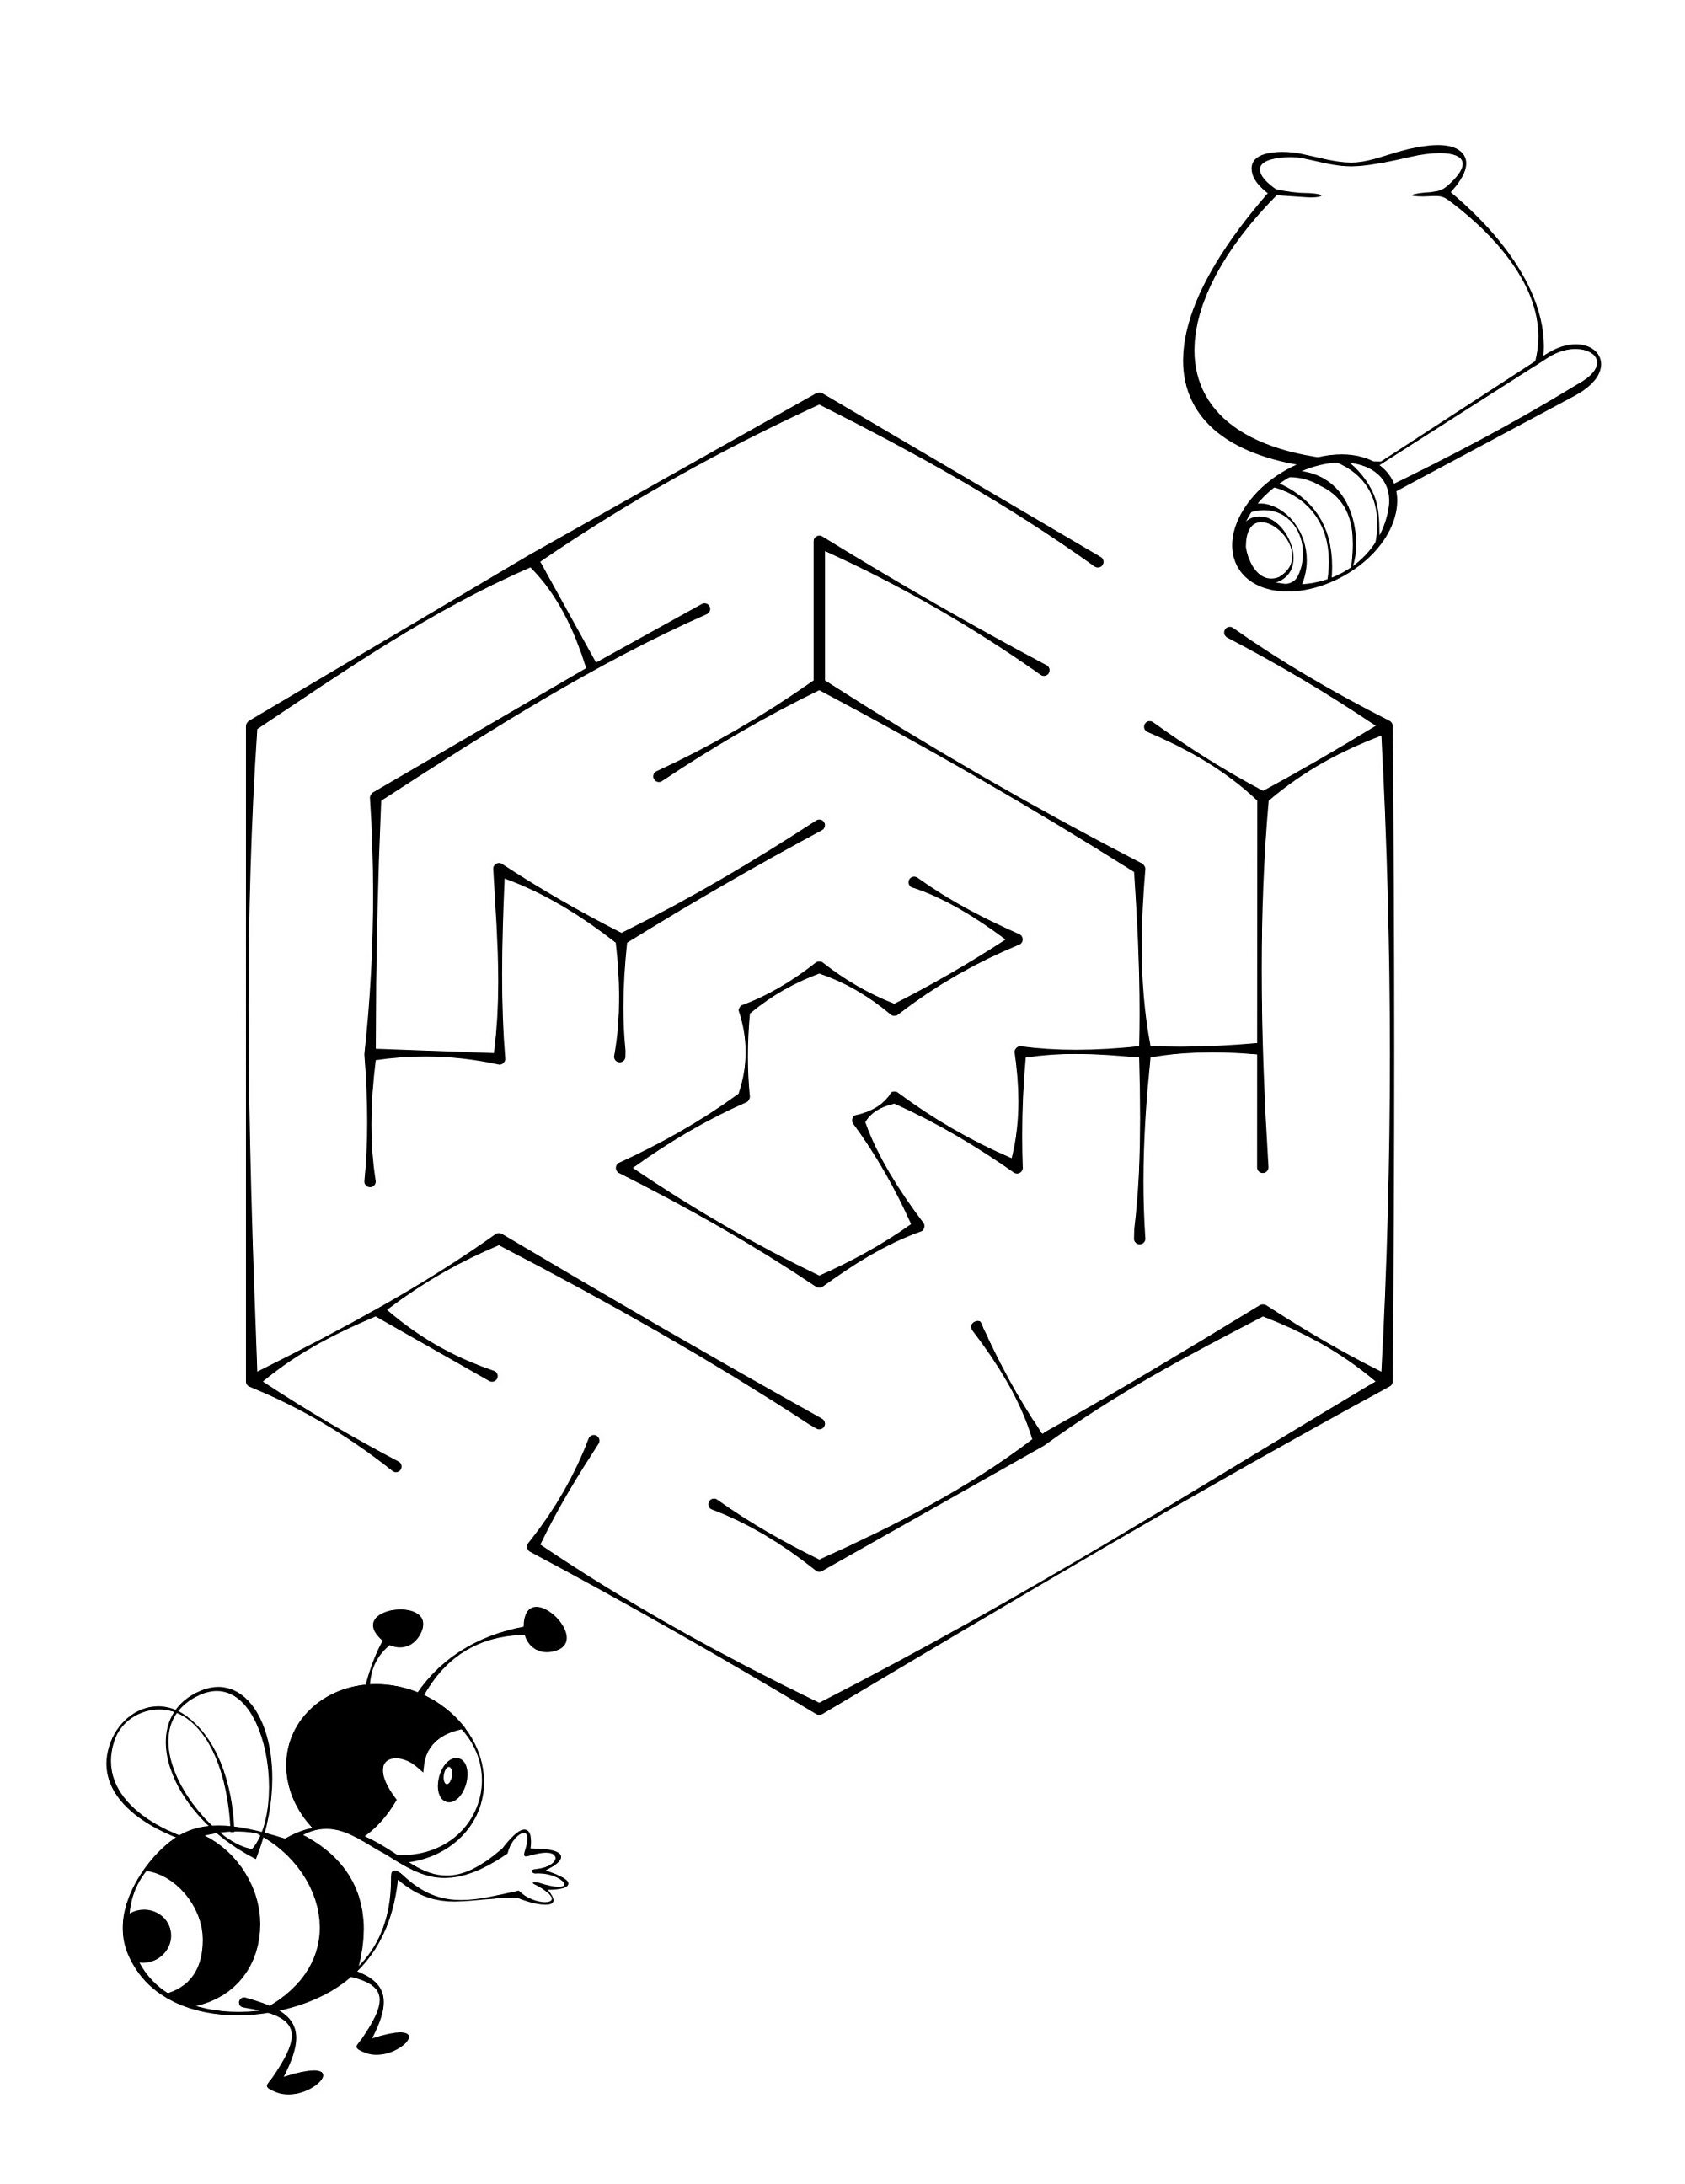 Maze Puzzle For Kids To Print | Kiddo Shelter - Printable Puzzles For Kids